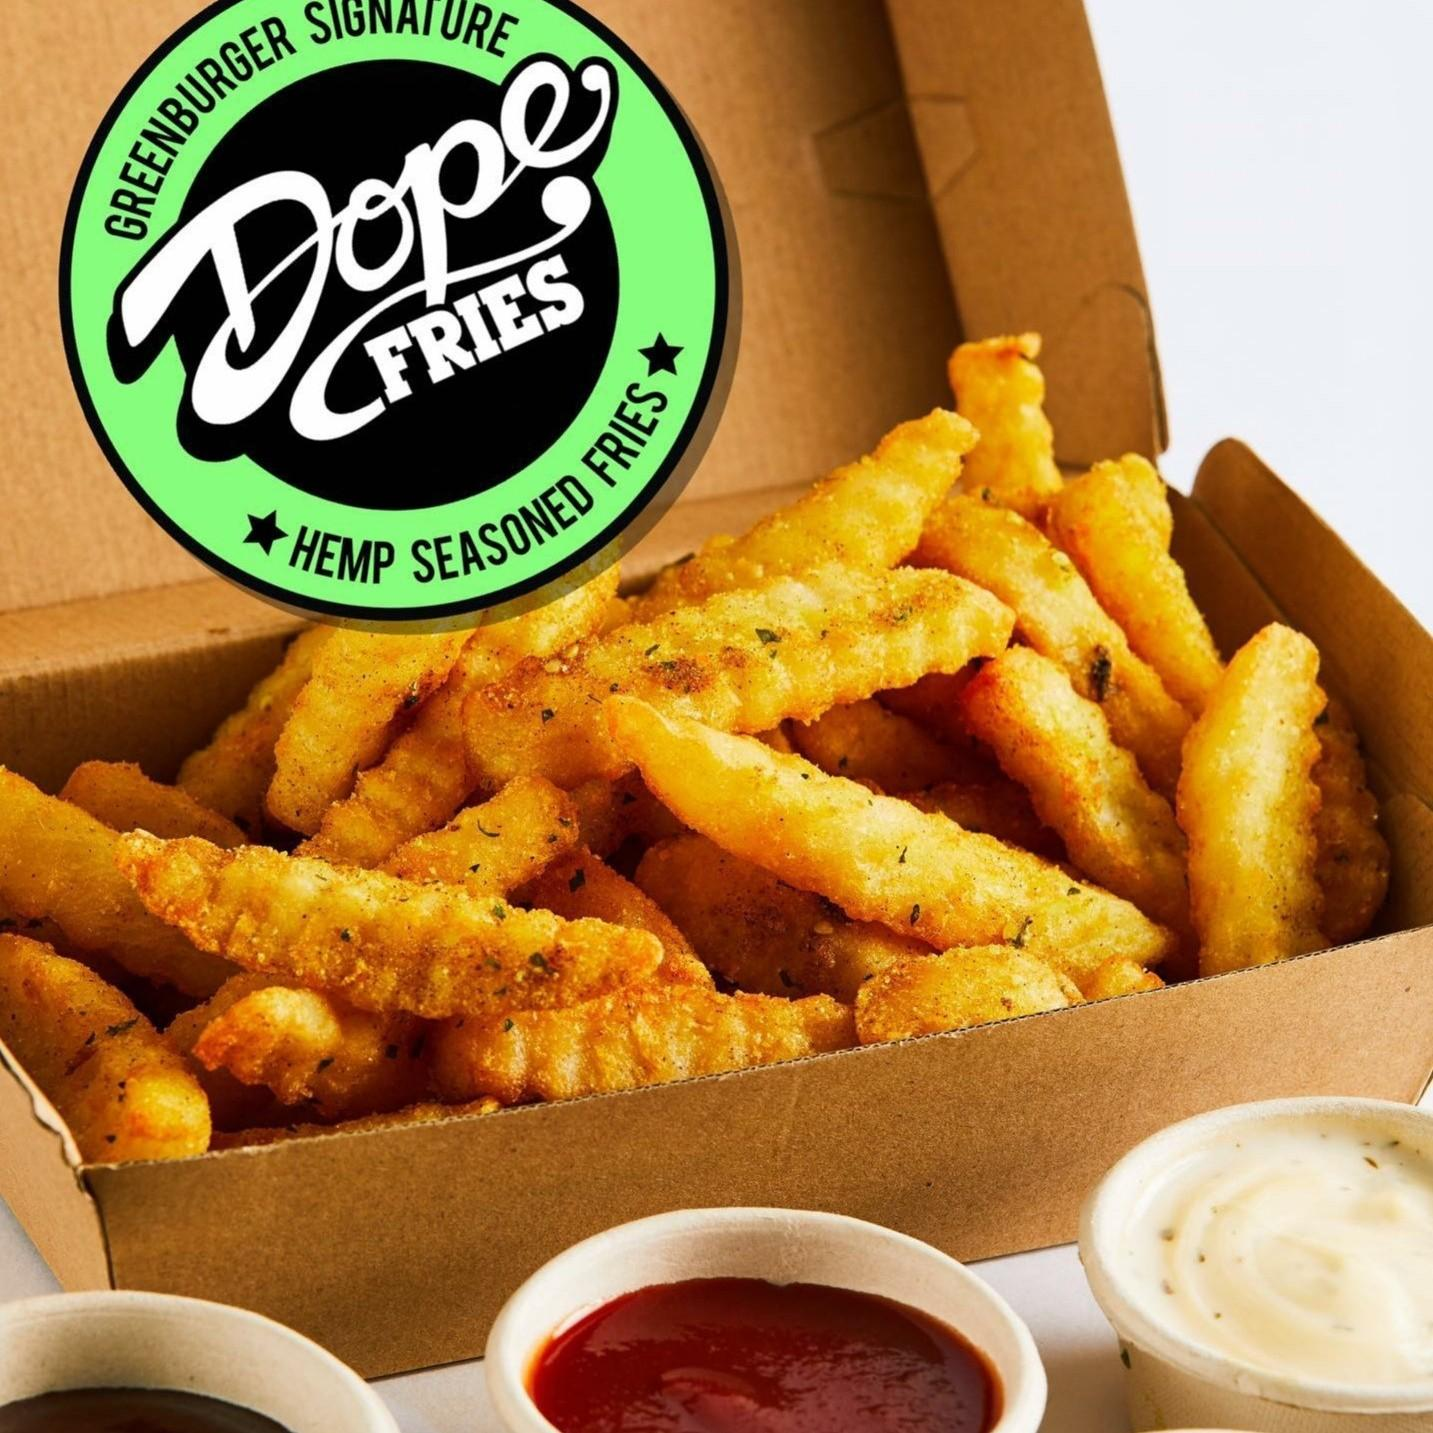 Dope Fries